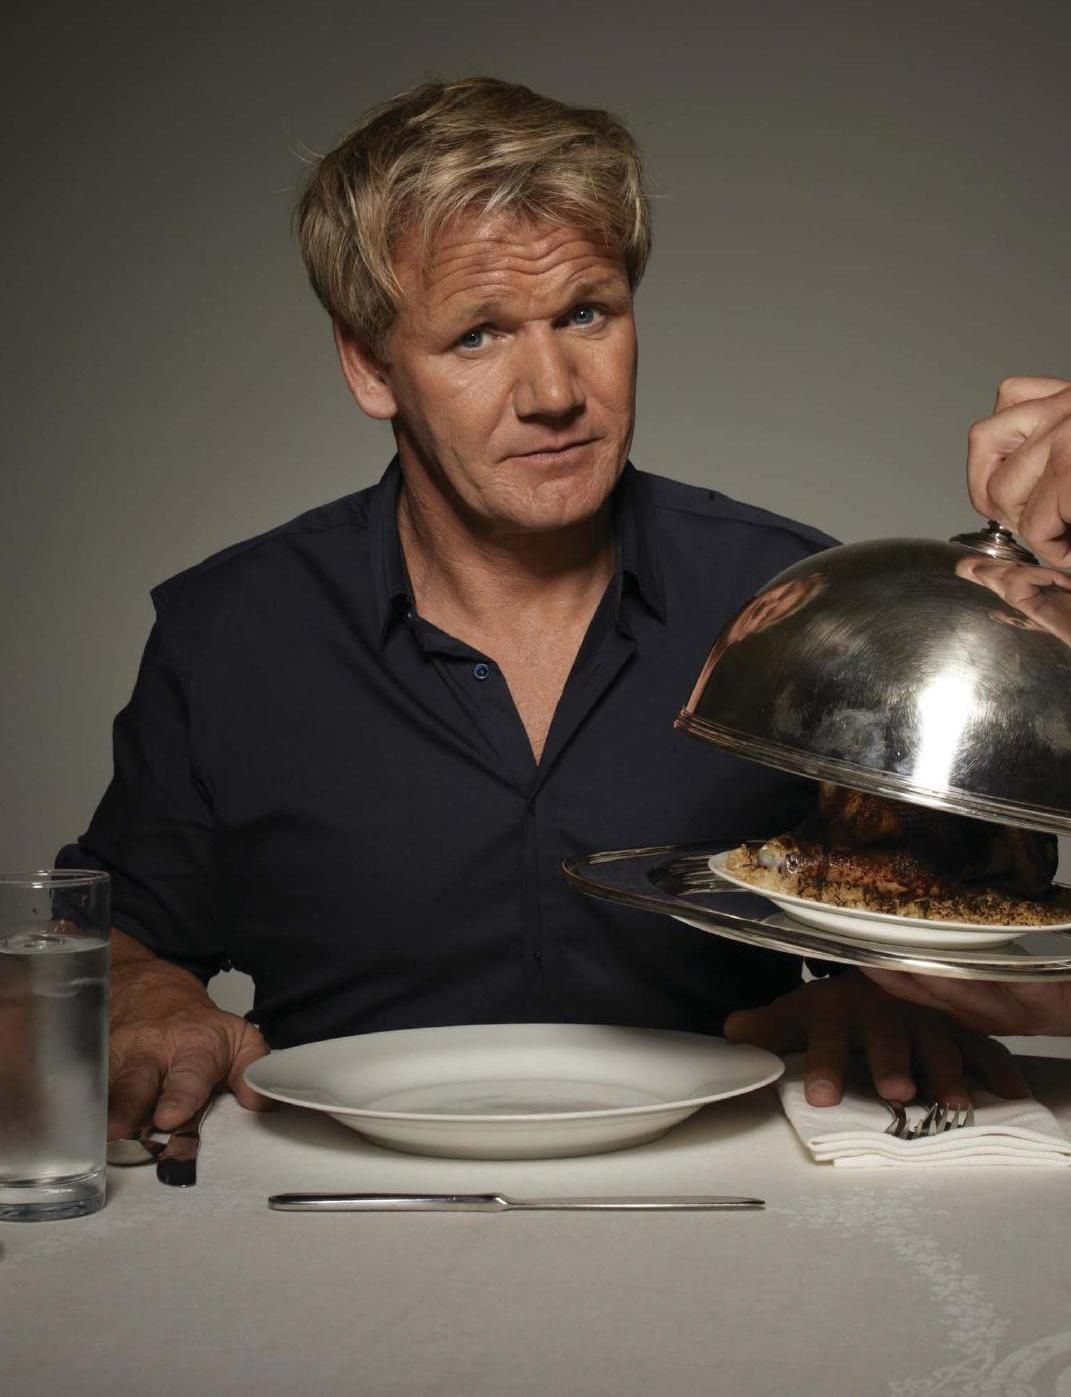 Wecook Chef gordon ramsay, Gordon ramsey, Chef gordon ramsey